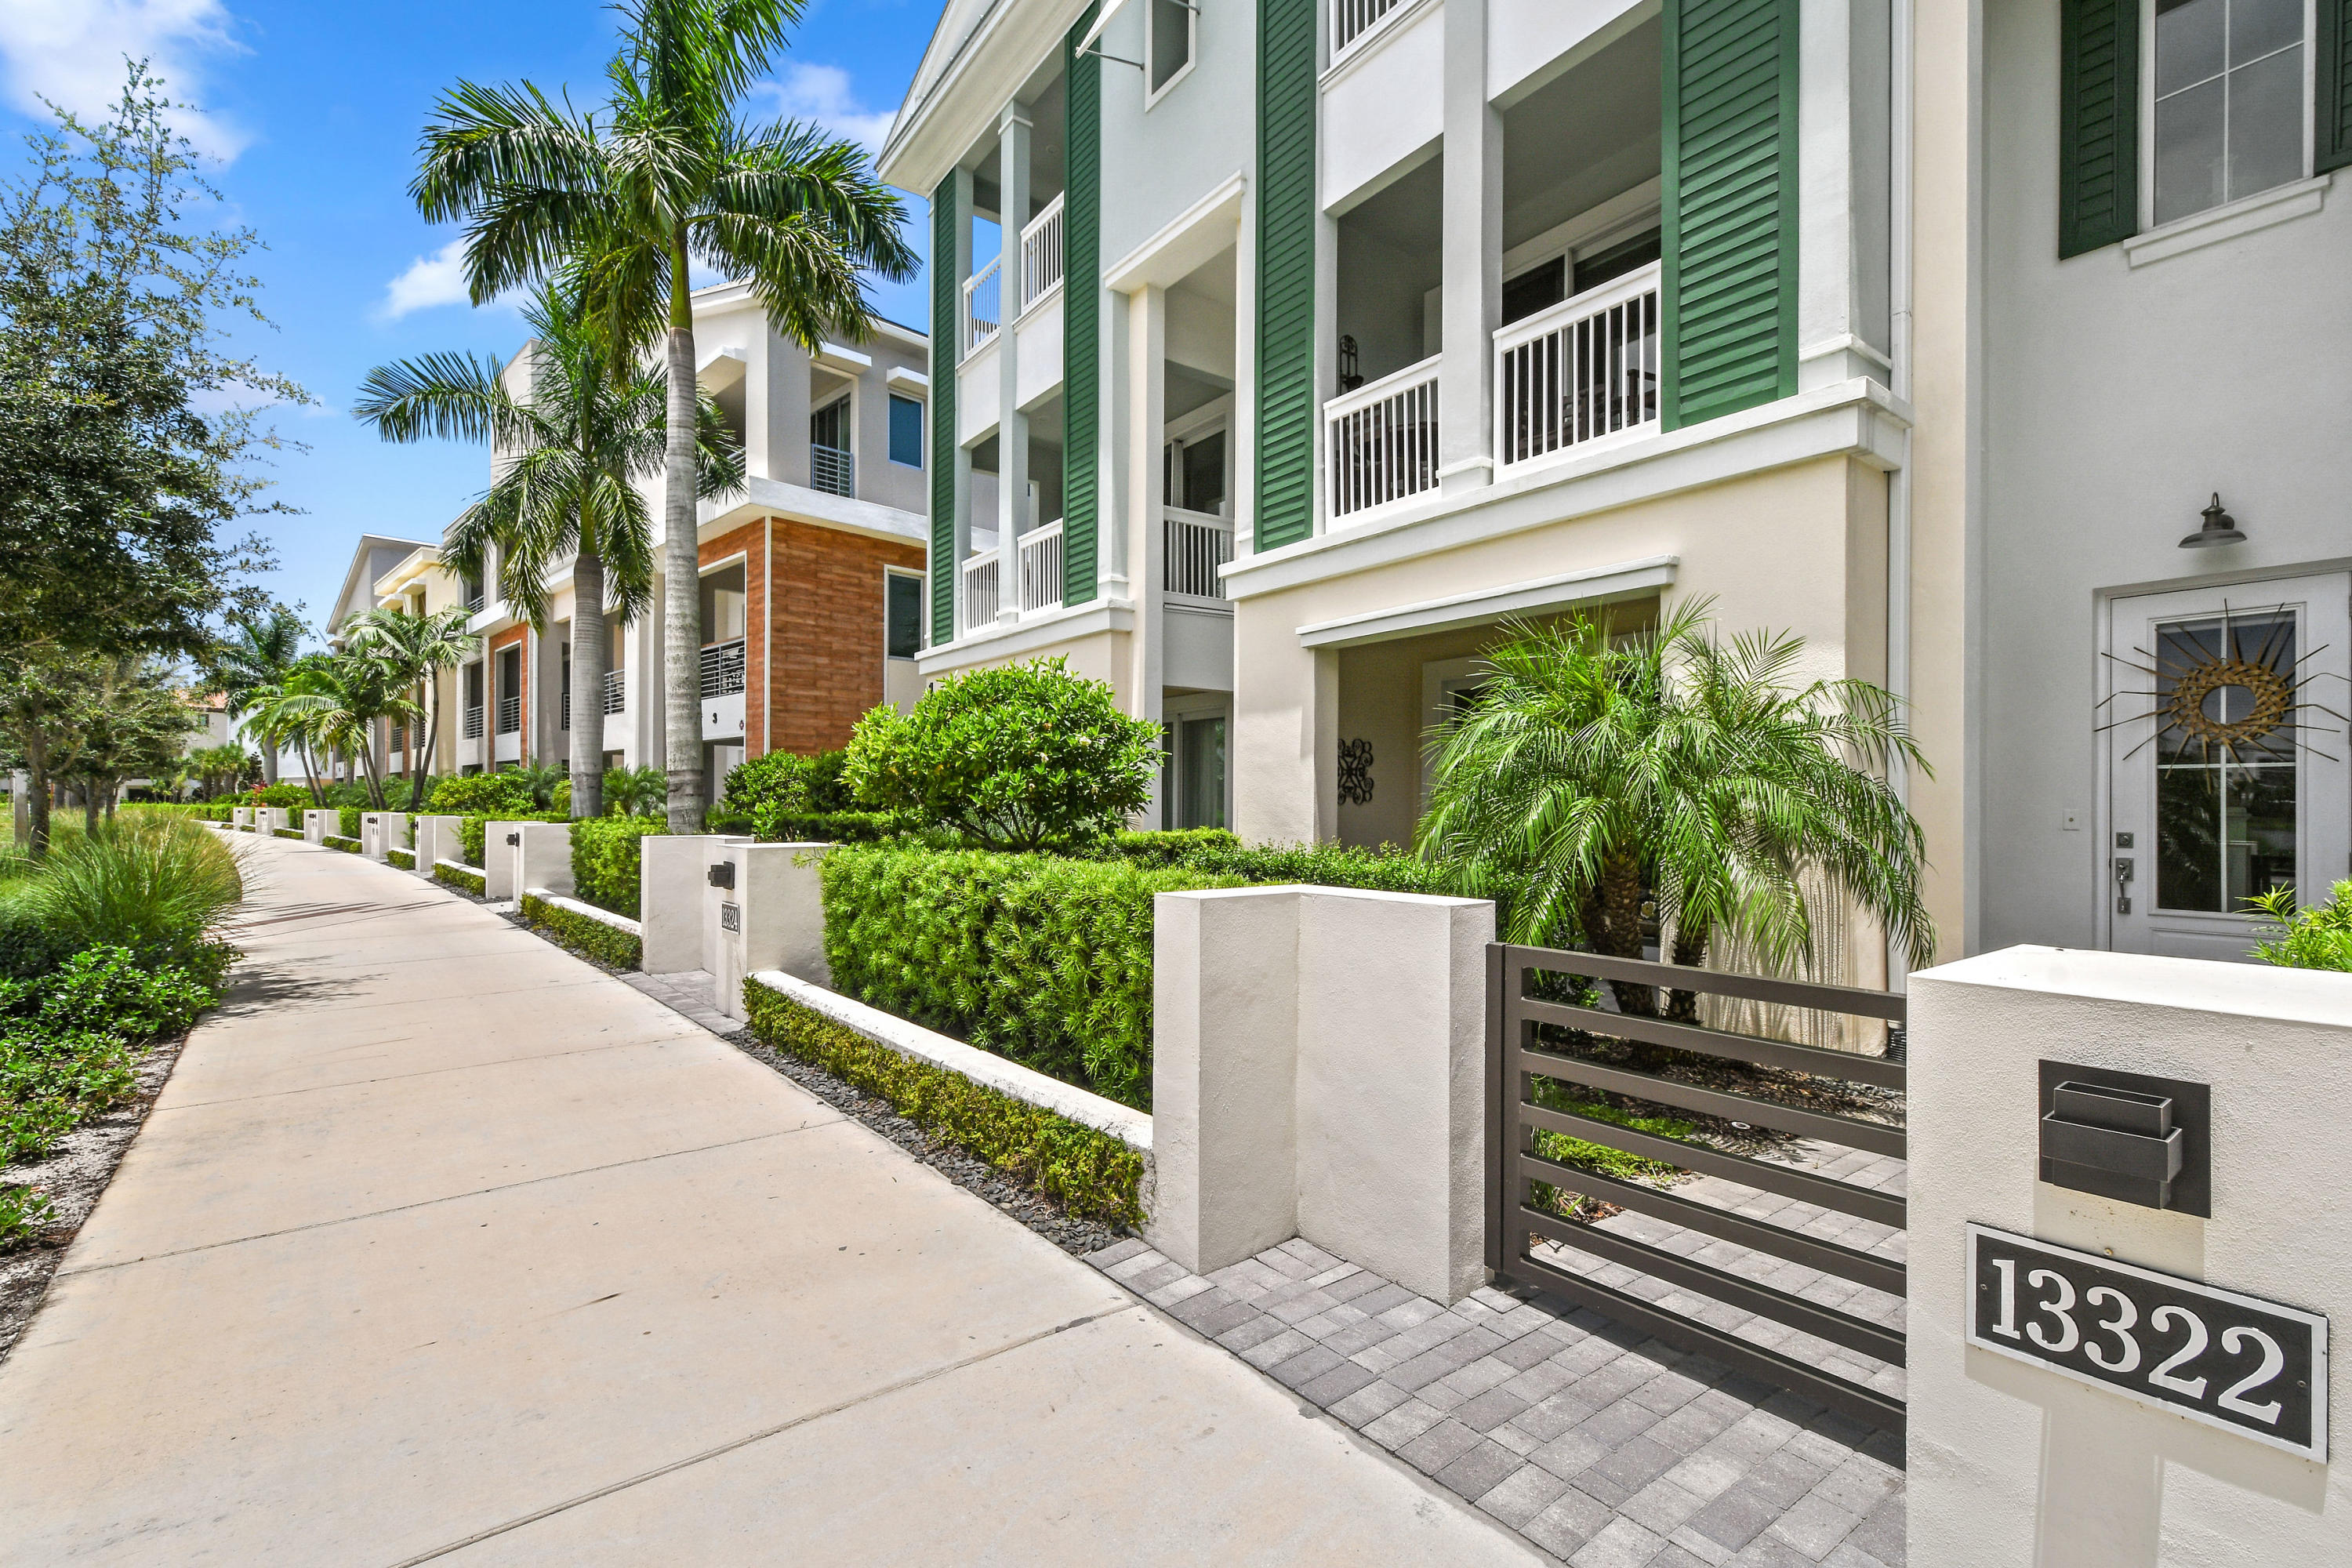 New Home for sale at 13322 Alton Road in Palm Beach Gardens